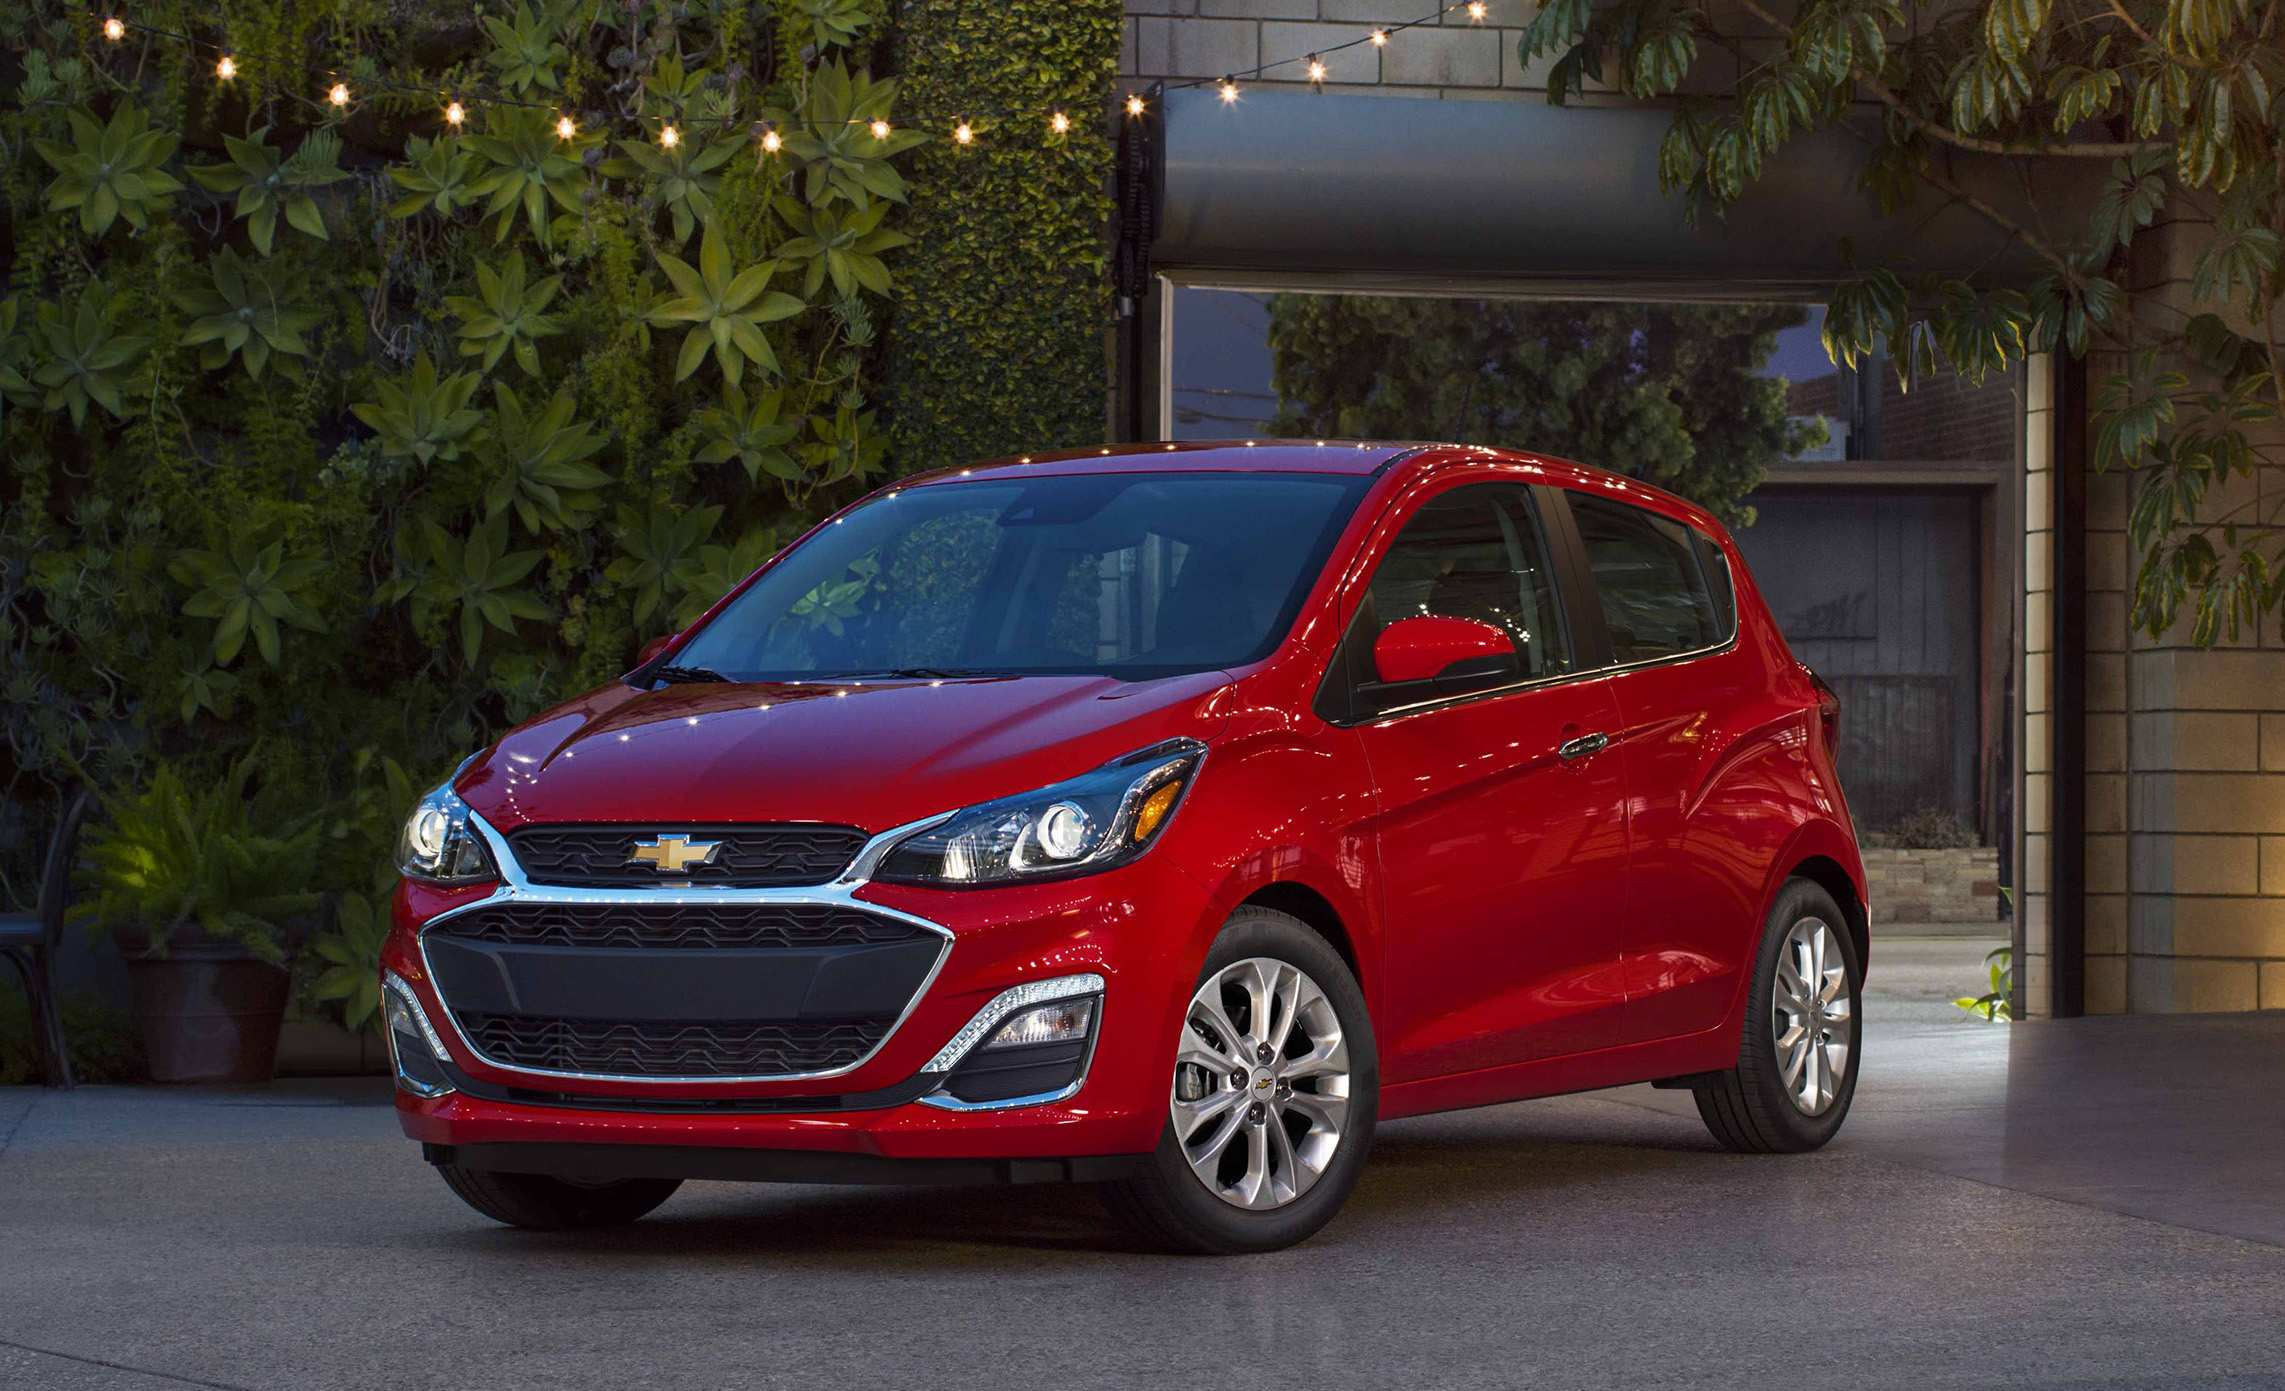 2020 Chevy Sonic Review.18 The 2020 Chevy Sonic Model Review Cars 2020